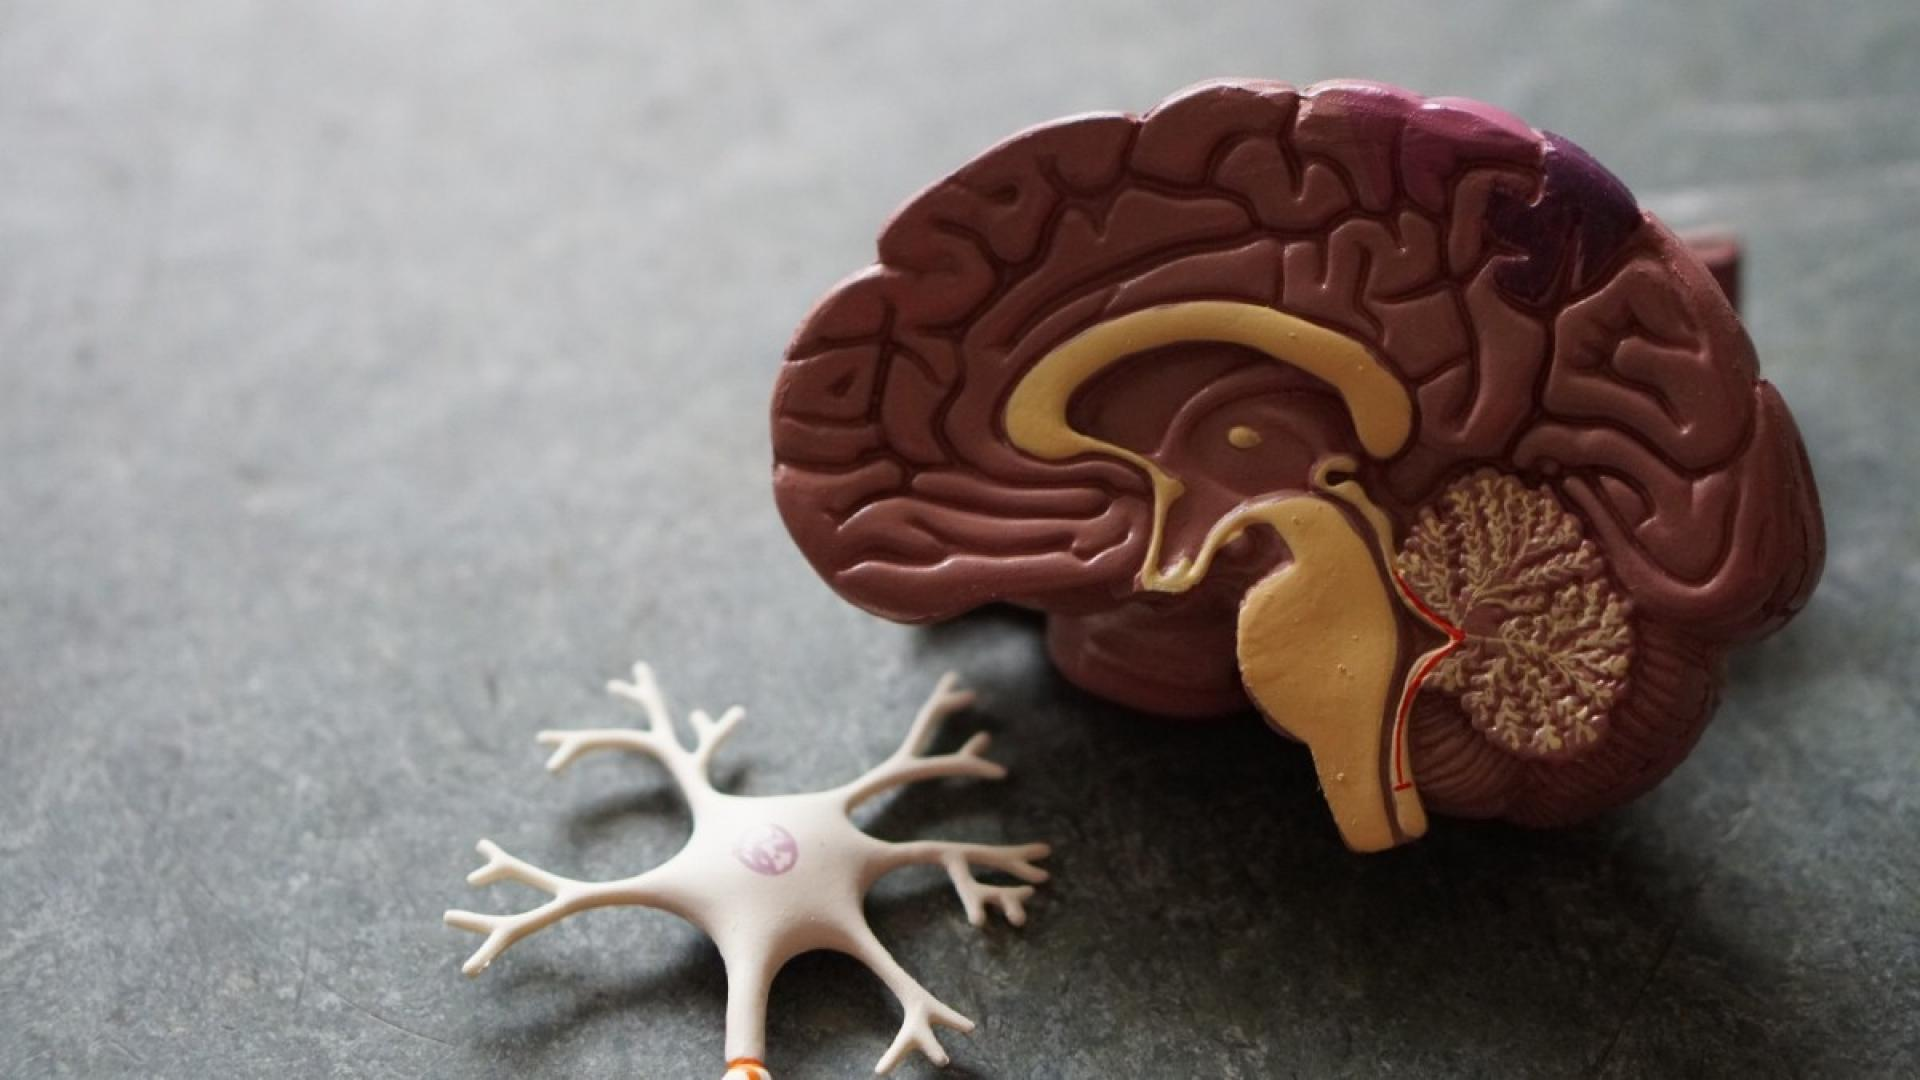 Alzheimer's research to focus on condition's subtypes